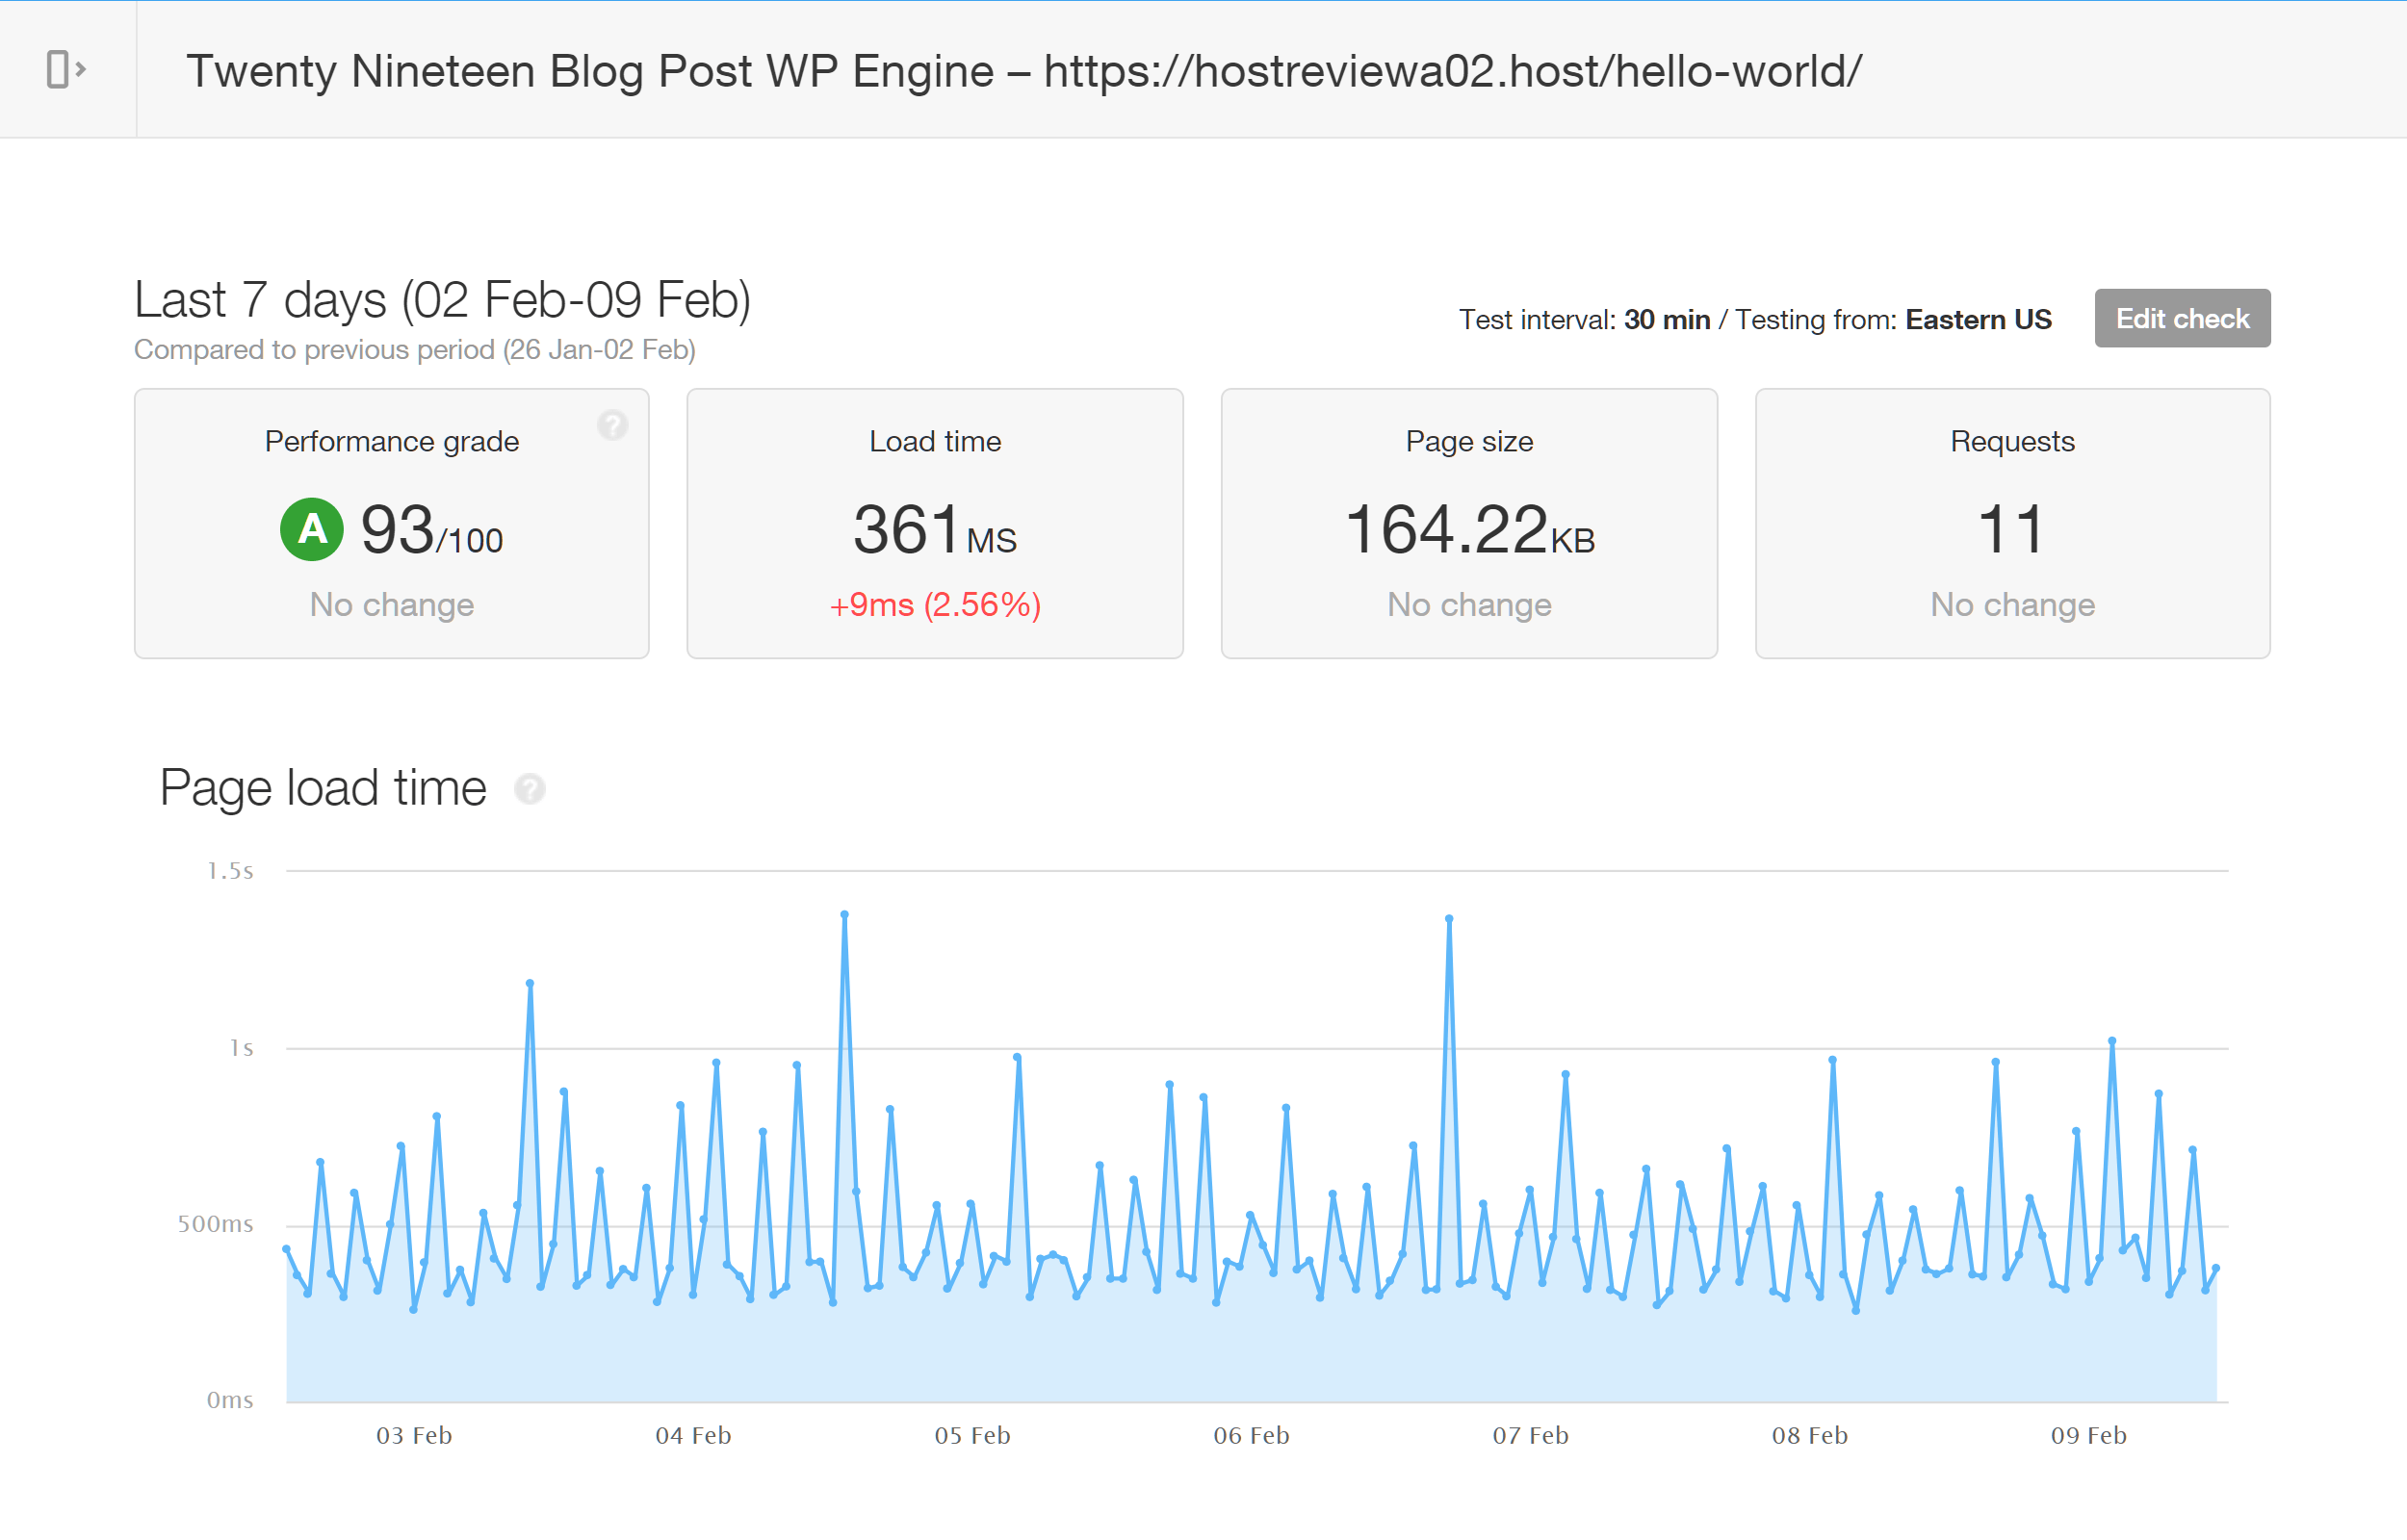 Pingdom Results for Twenty Nineteen with WP Engine